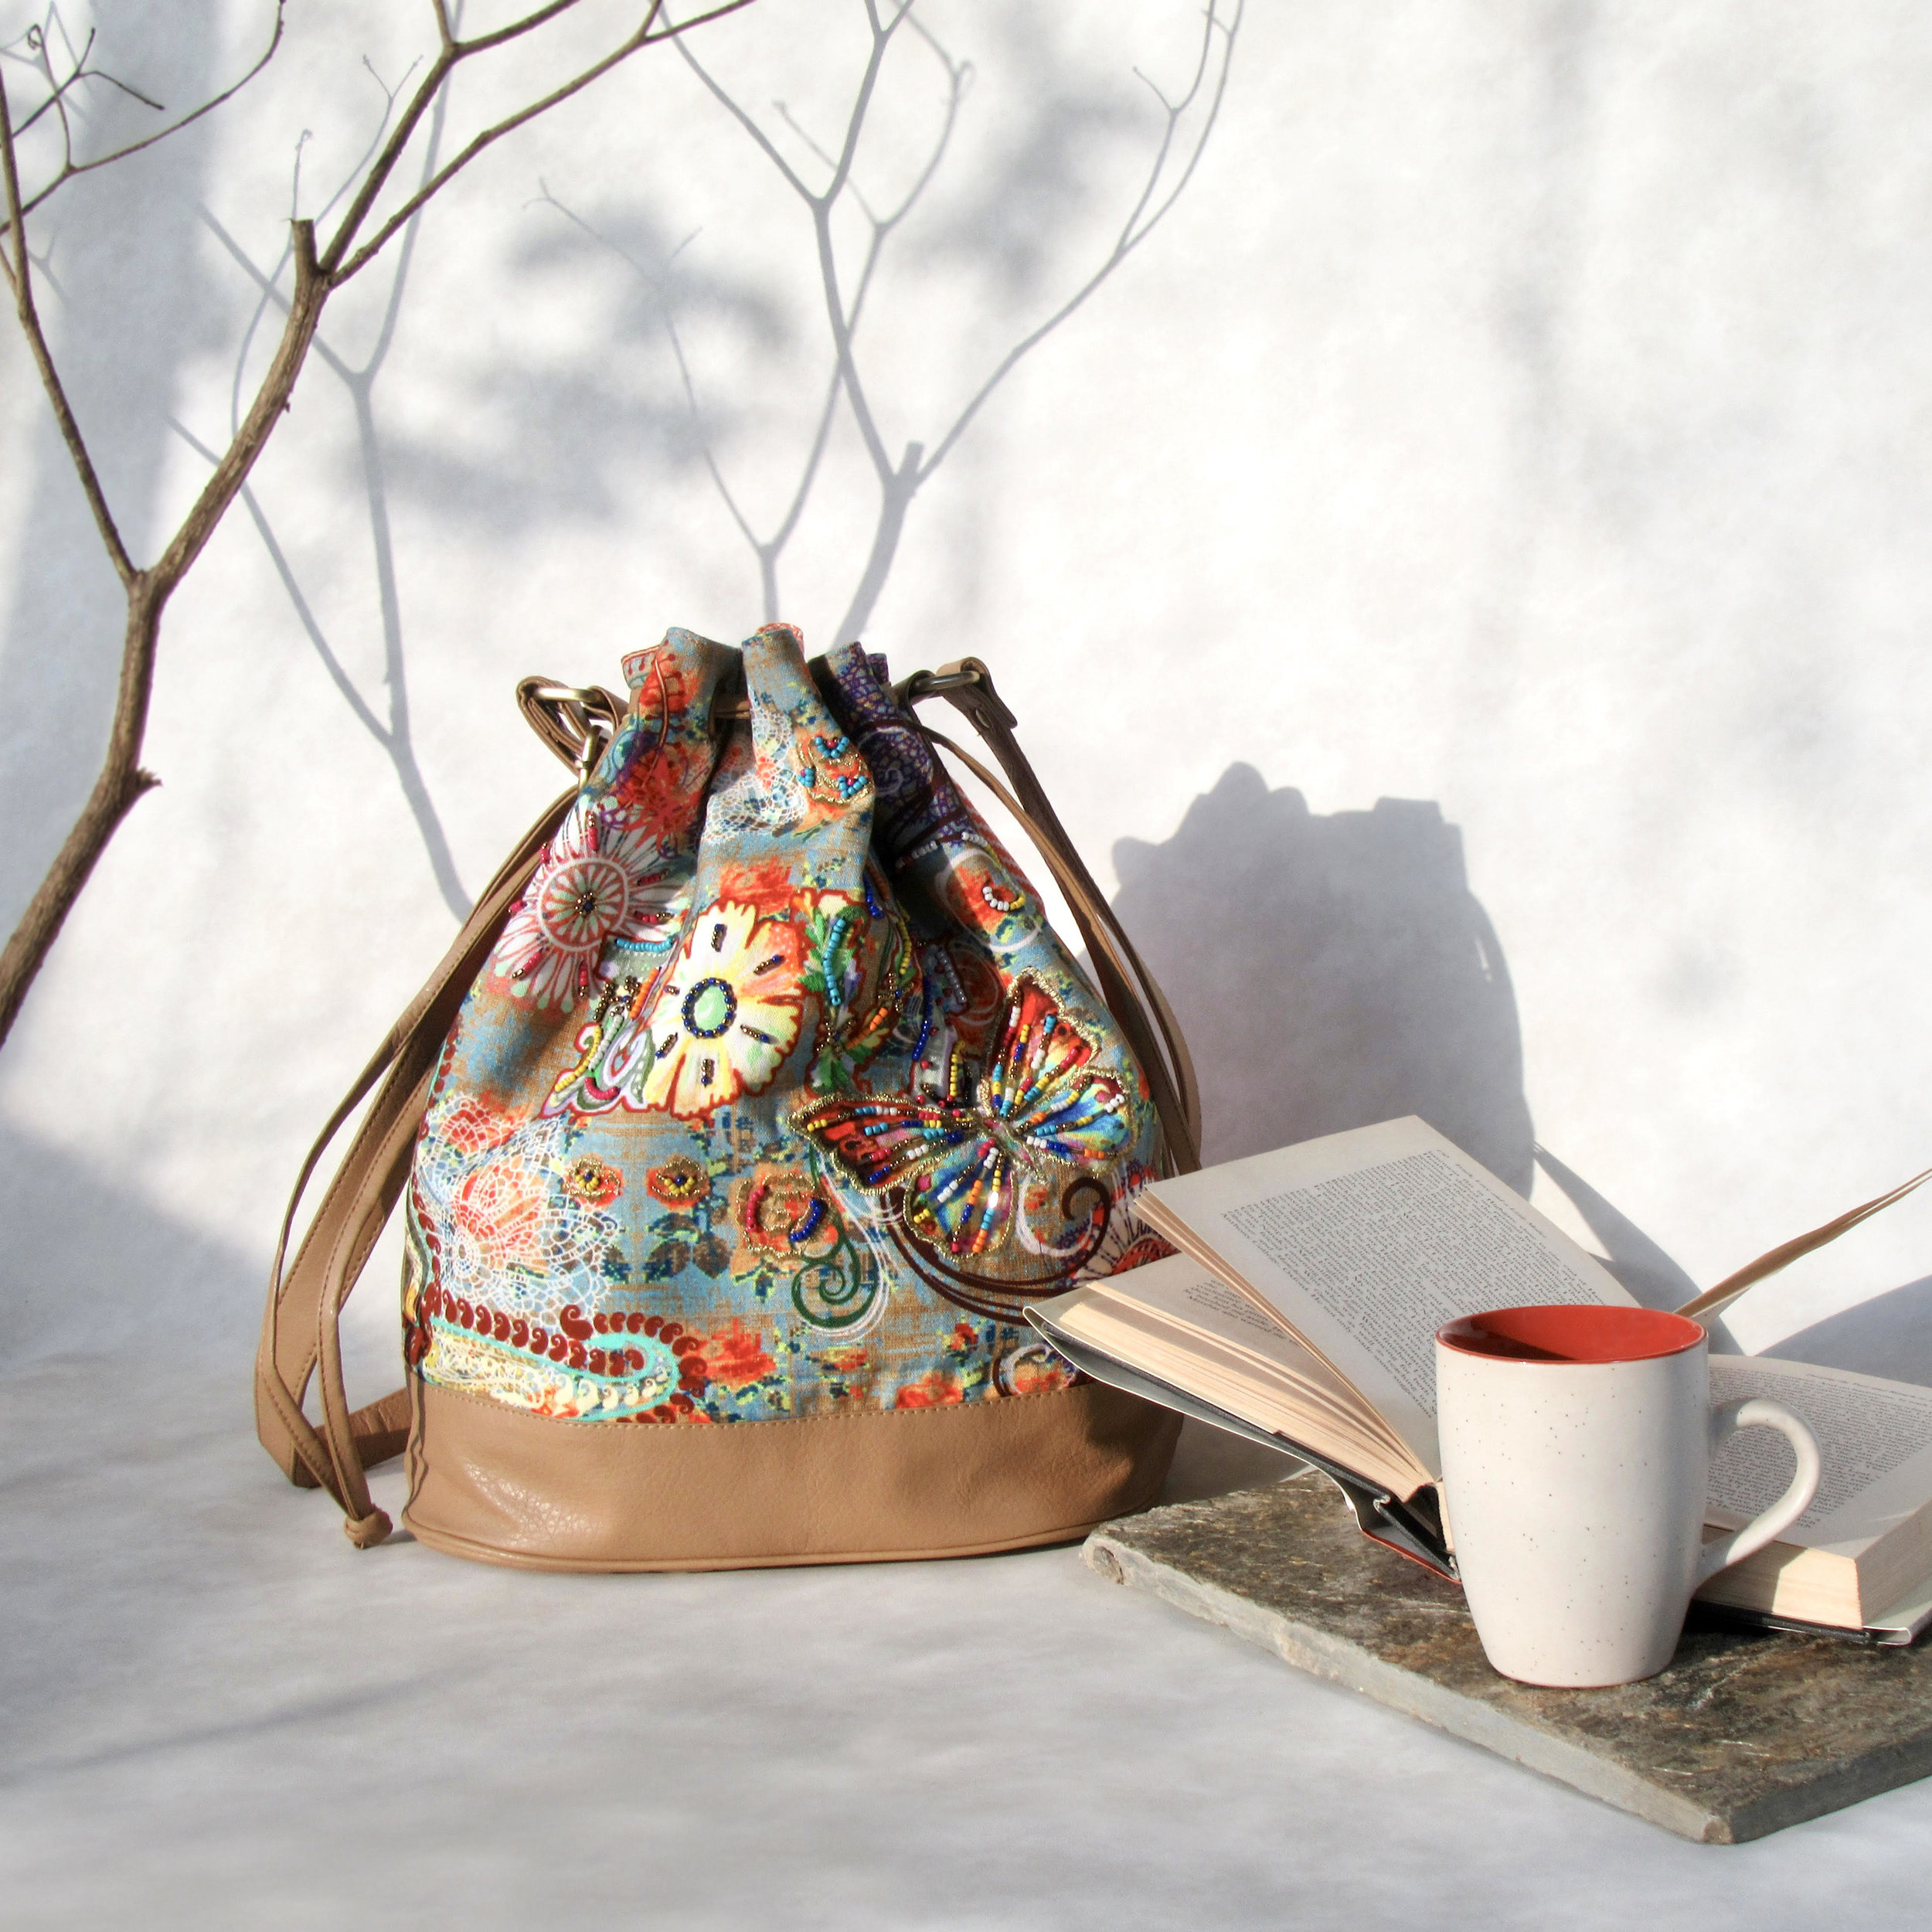 Handcrafted Bag with embroidery.jpg